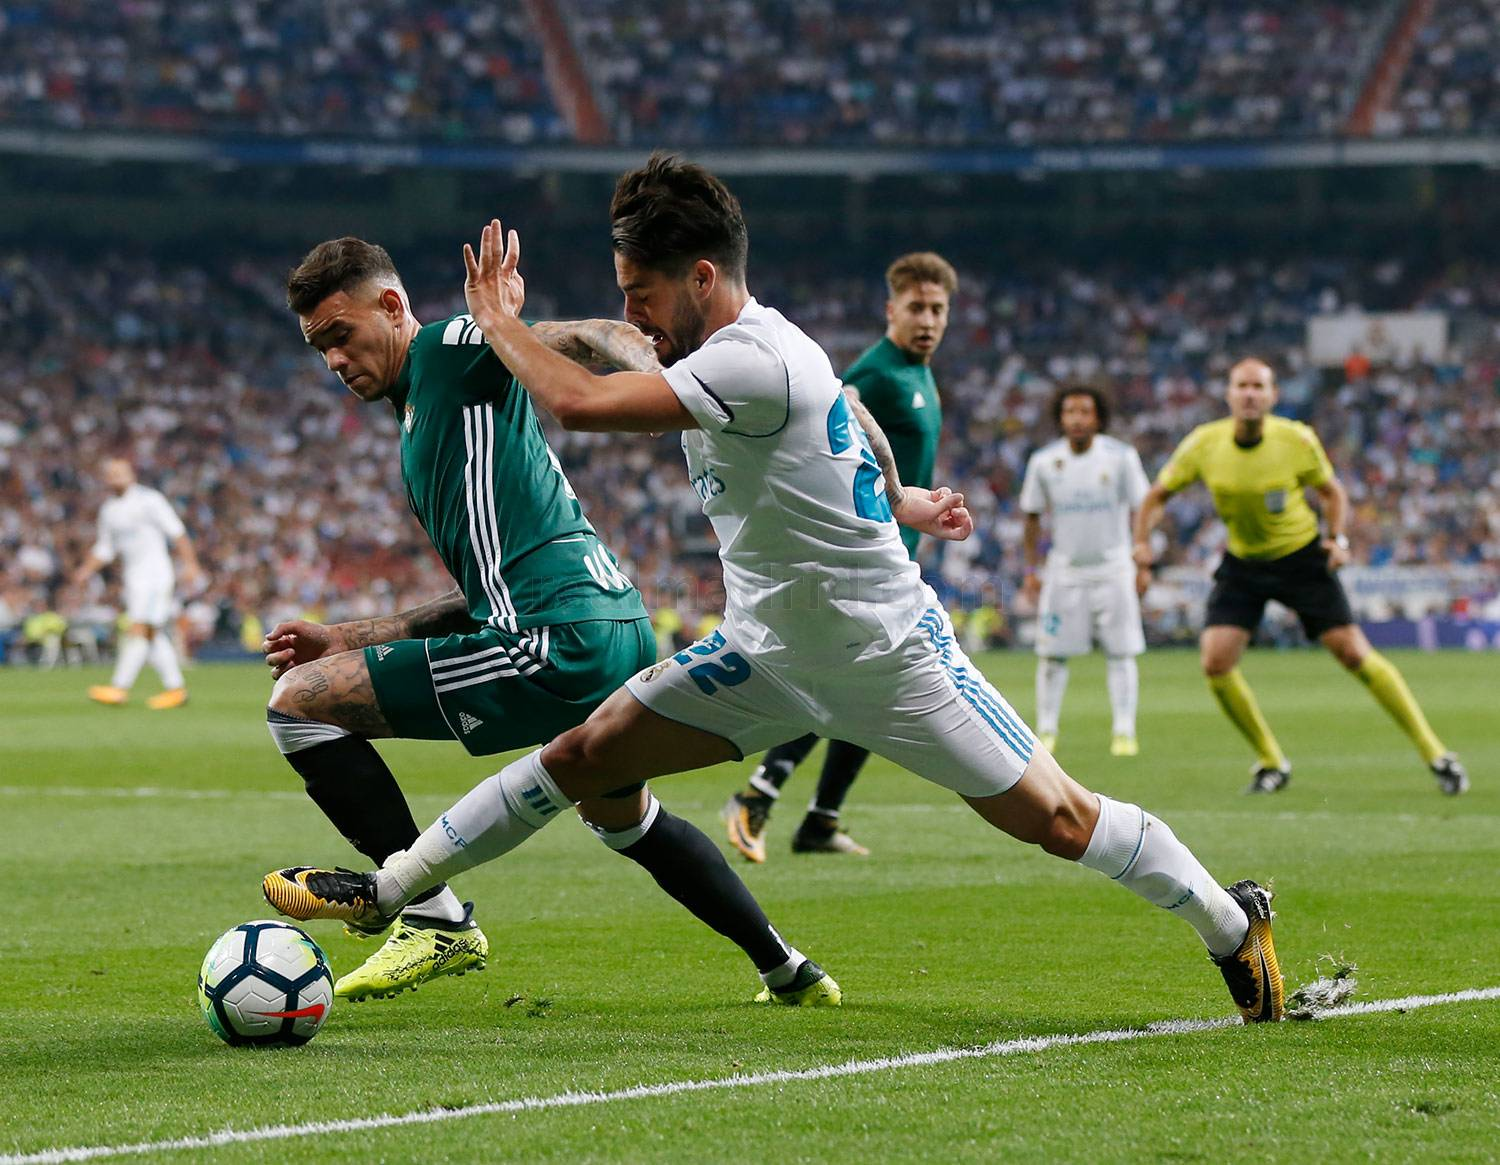 Real Madrid - Real Madrid - Real Betis - 20-09-2017